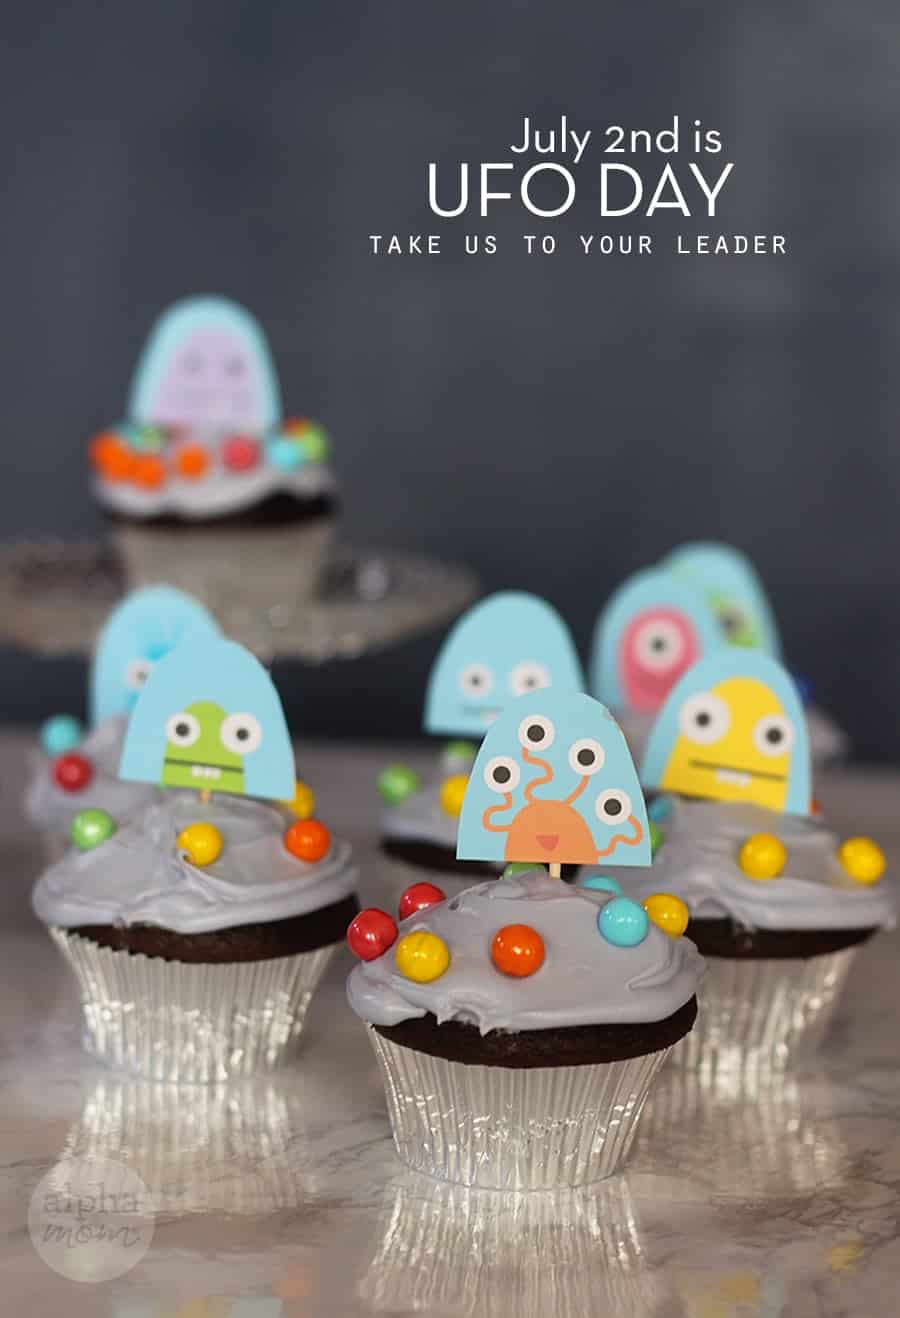 UFO Cupcakes by Brenda Ponnay for Alphamom.com #OuterSpaceParty #IntergalaticParty #KidPartyCupcakes #UFODay